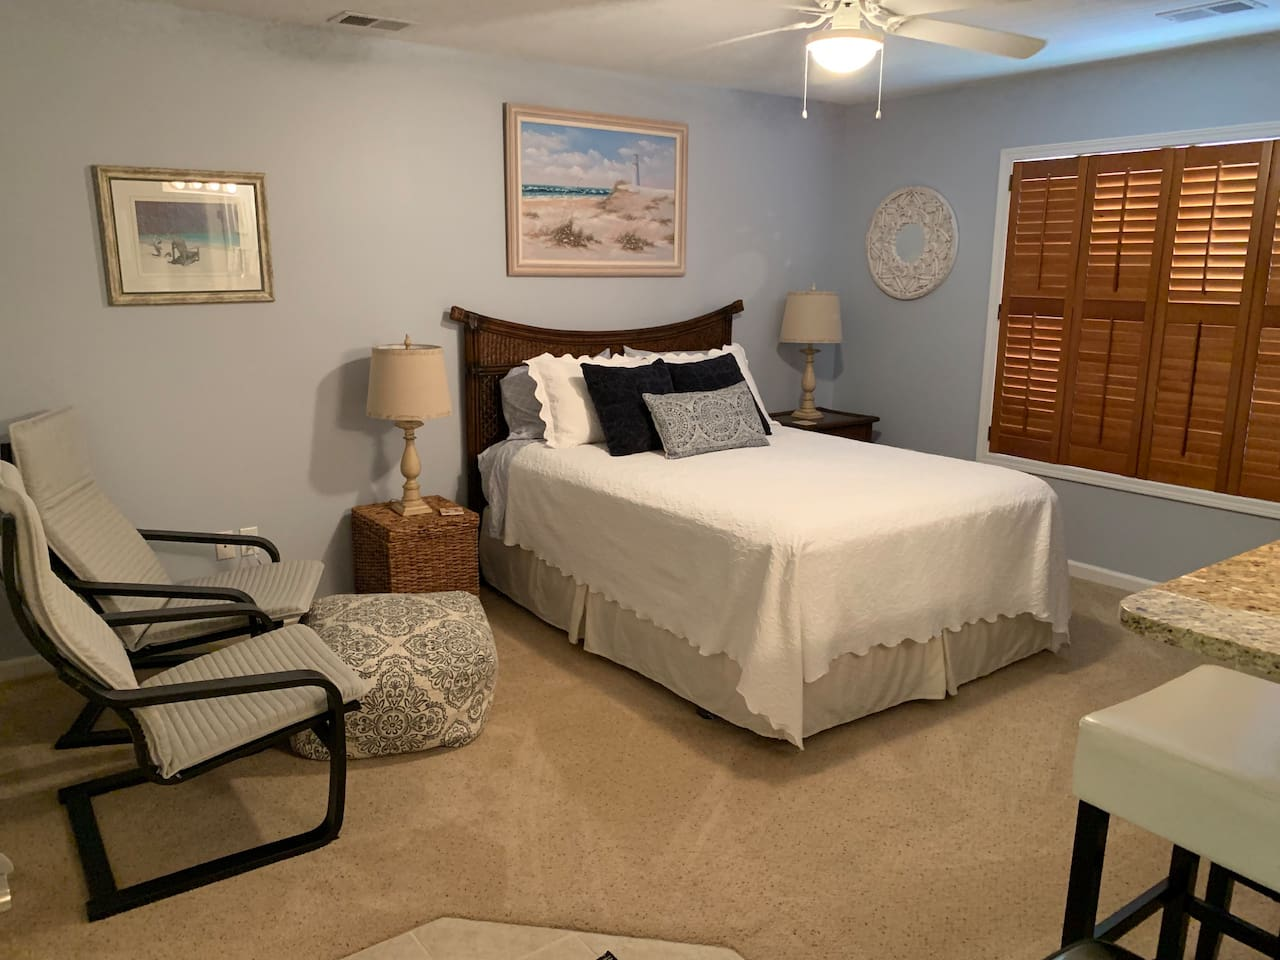 Queen bed and comfortable seating for relaxing